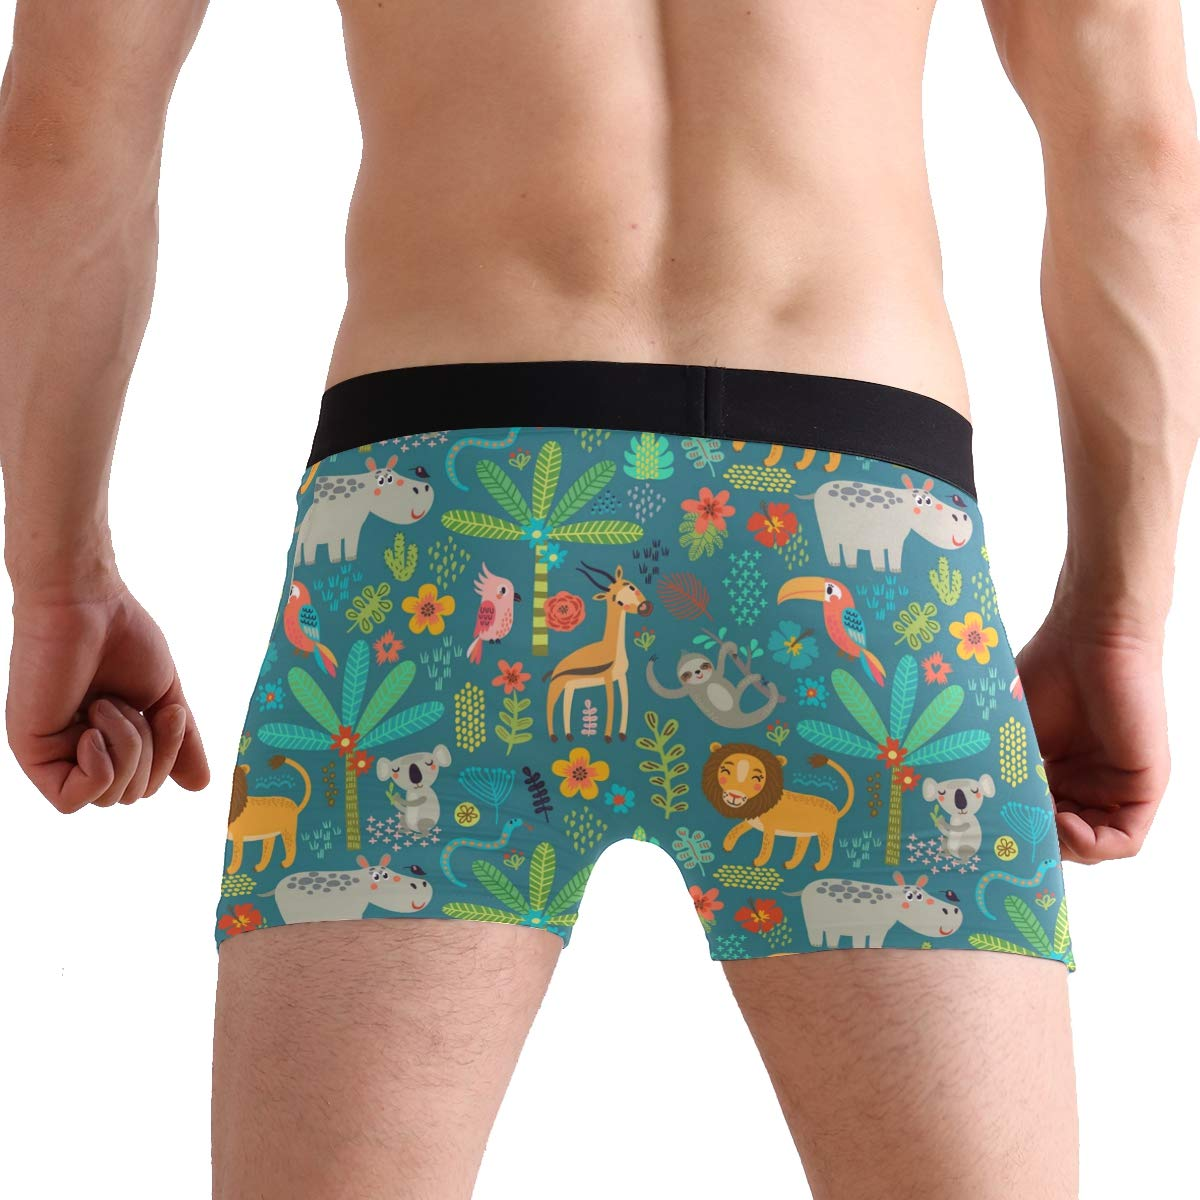 Mkuell Christmas Comfortable Mens Boxer Briefs Multi-Size Soft Underwear S